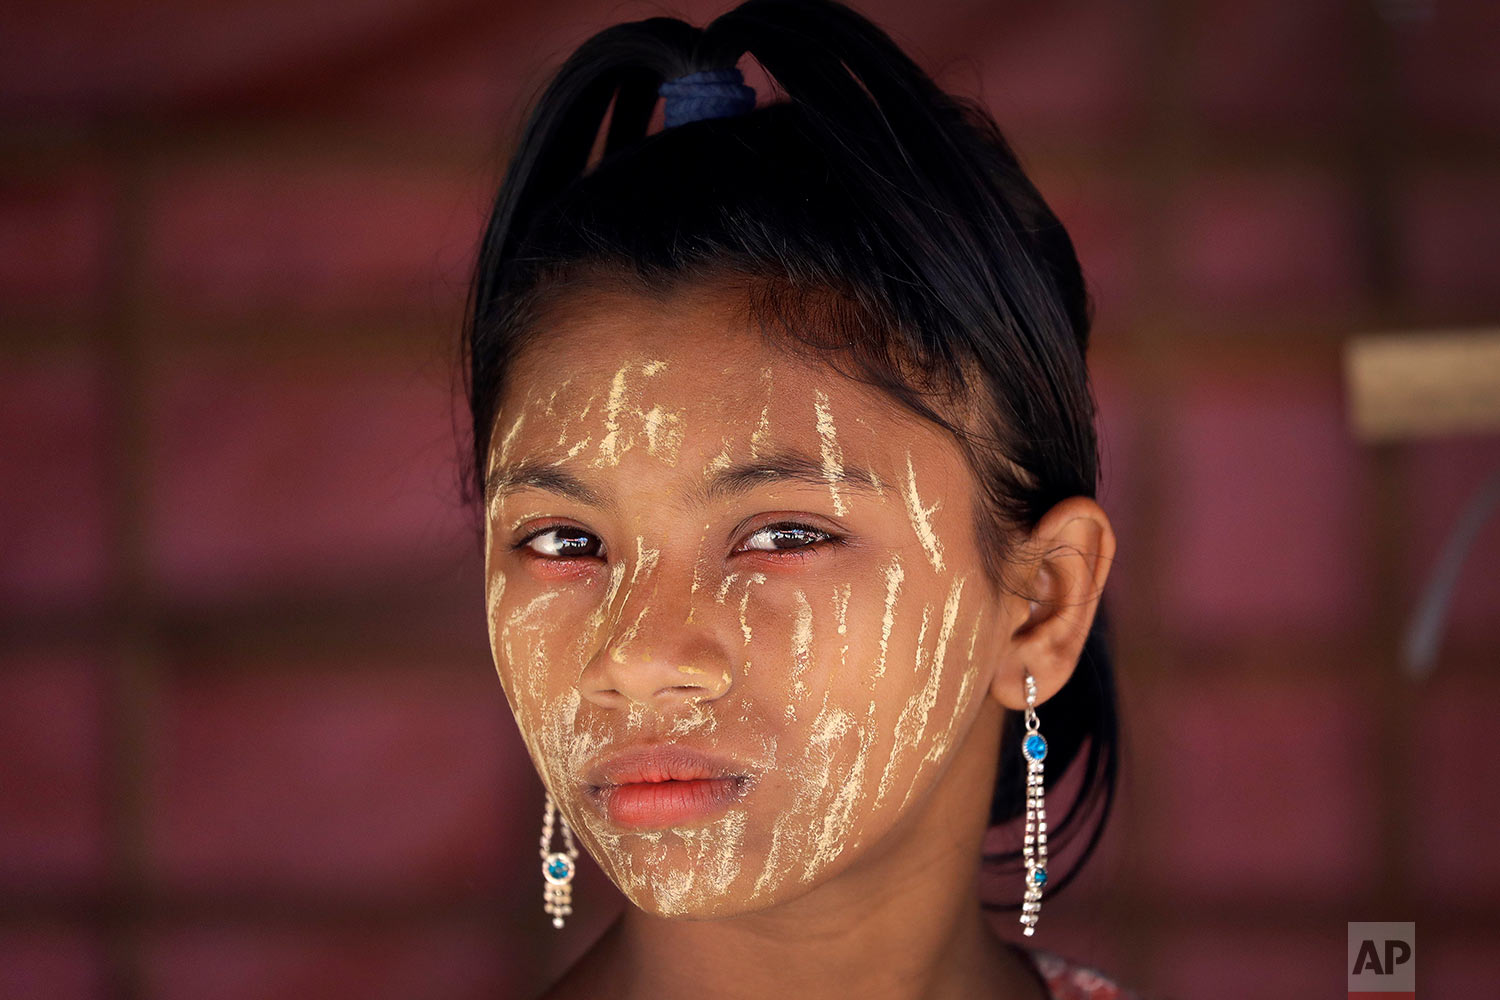 "A Rohingya girl with her face covered in ""thanaka"", a comestic paste from ground bark, stands in her family's tent on Tuesday, Nov. 21, 2017, in Kutupalong refugee camp in Bangladesh. Since late August, more than 620,000 Rohingya have fled Myanmar's Rakhine state into neighboring Bangladesh, seeking safety from what the military described as ""clearance operations."" The United Nations and others have said the military's actions appeared to be a campaign of ""ethnic cleansing,"" using acts of violence and intimidation and burning down homes to force the Rohingya to leave their communities. (AP Photo/Wong Maye-E)"